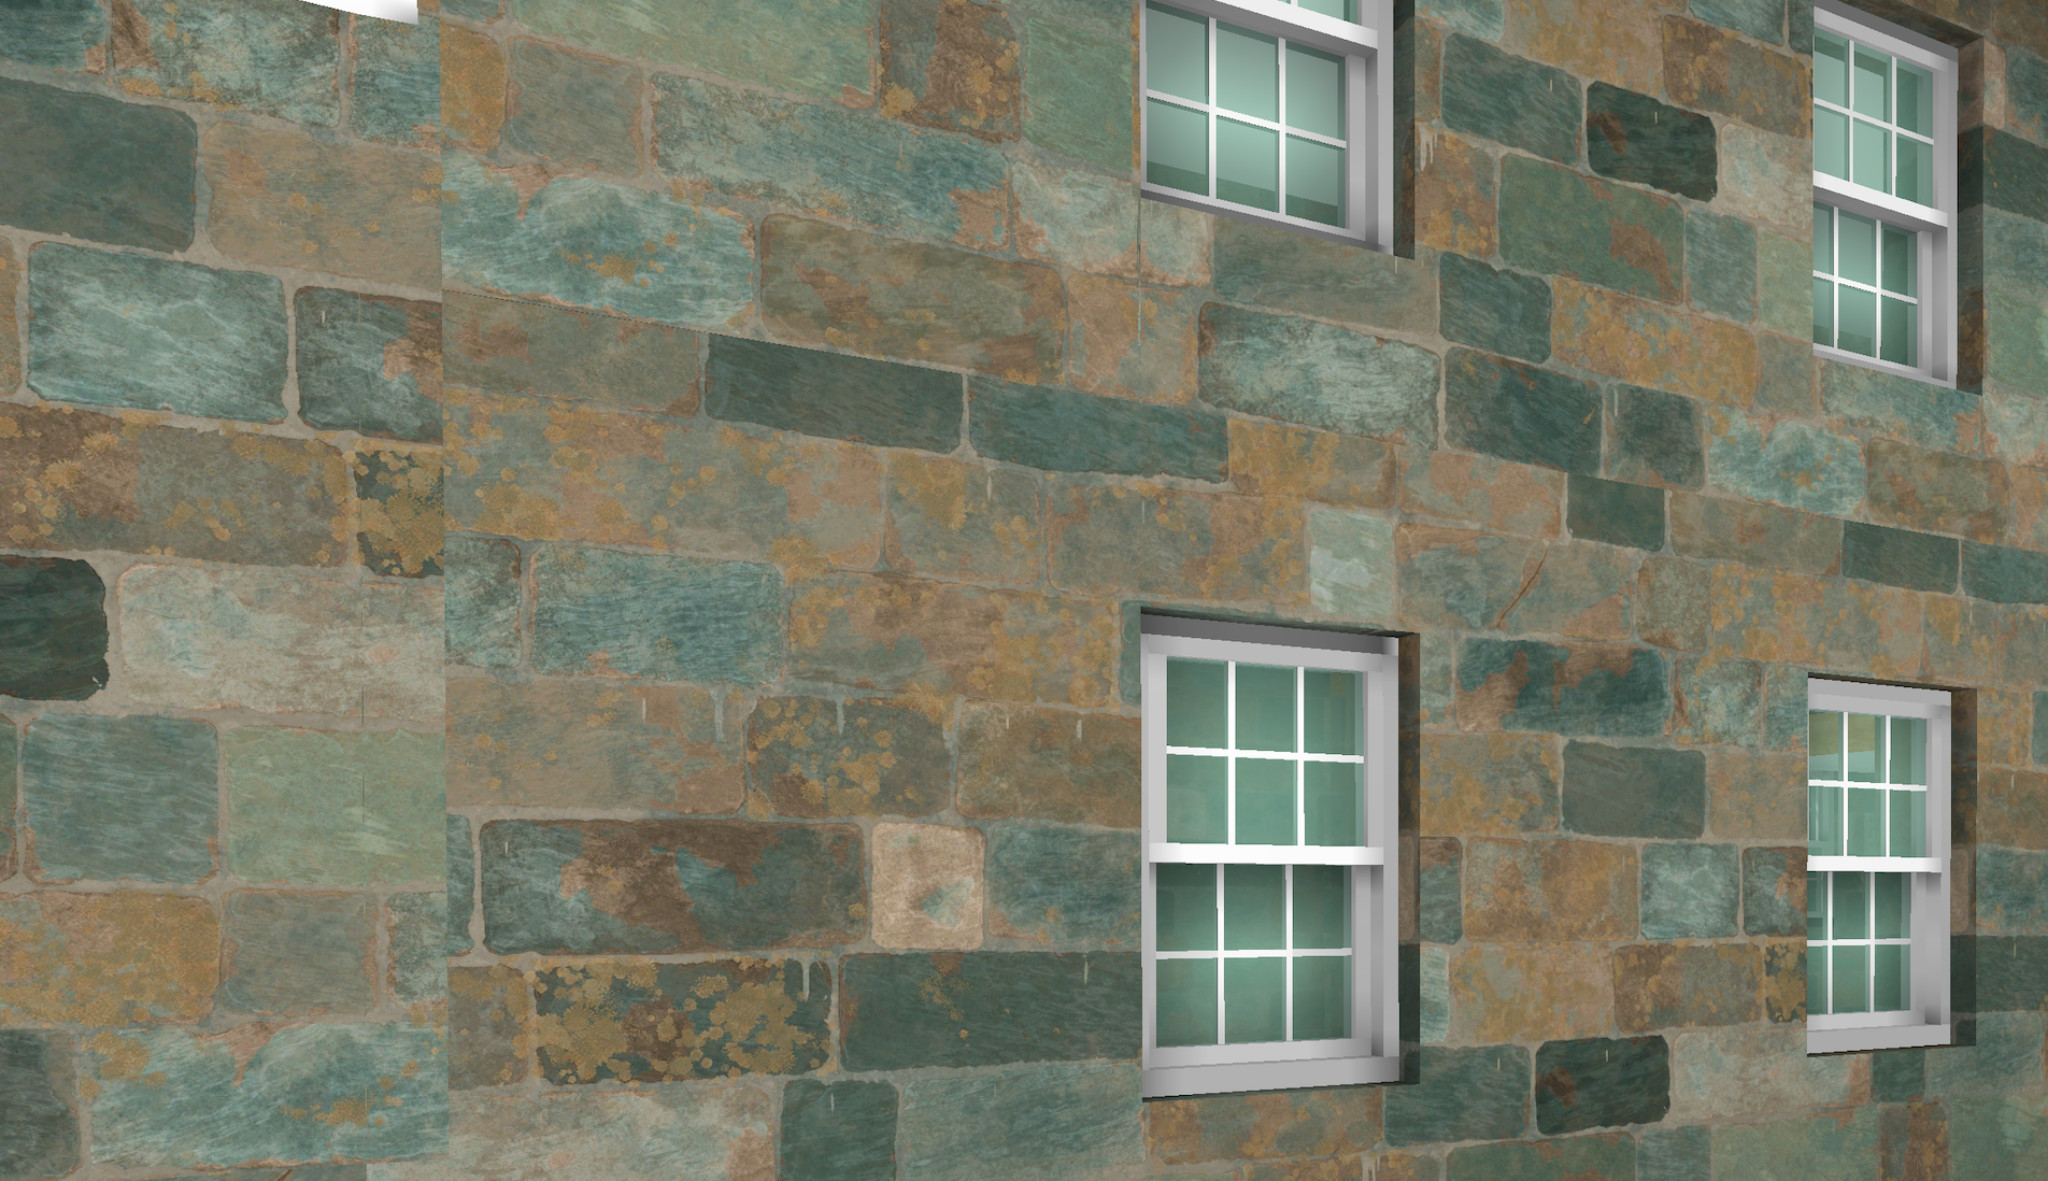 Newly developed JGA Guernsey granite material in 3D window and BIMx looks like this